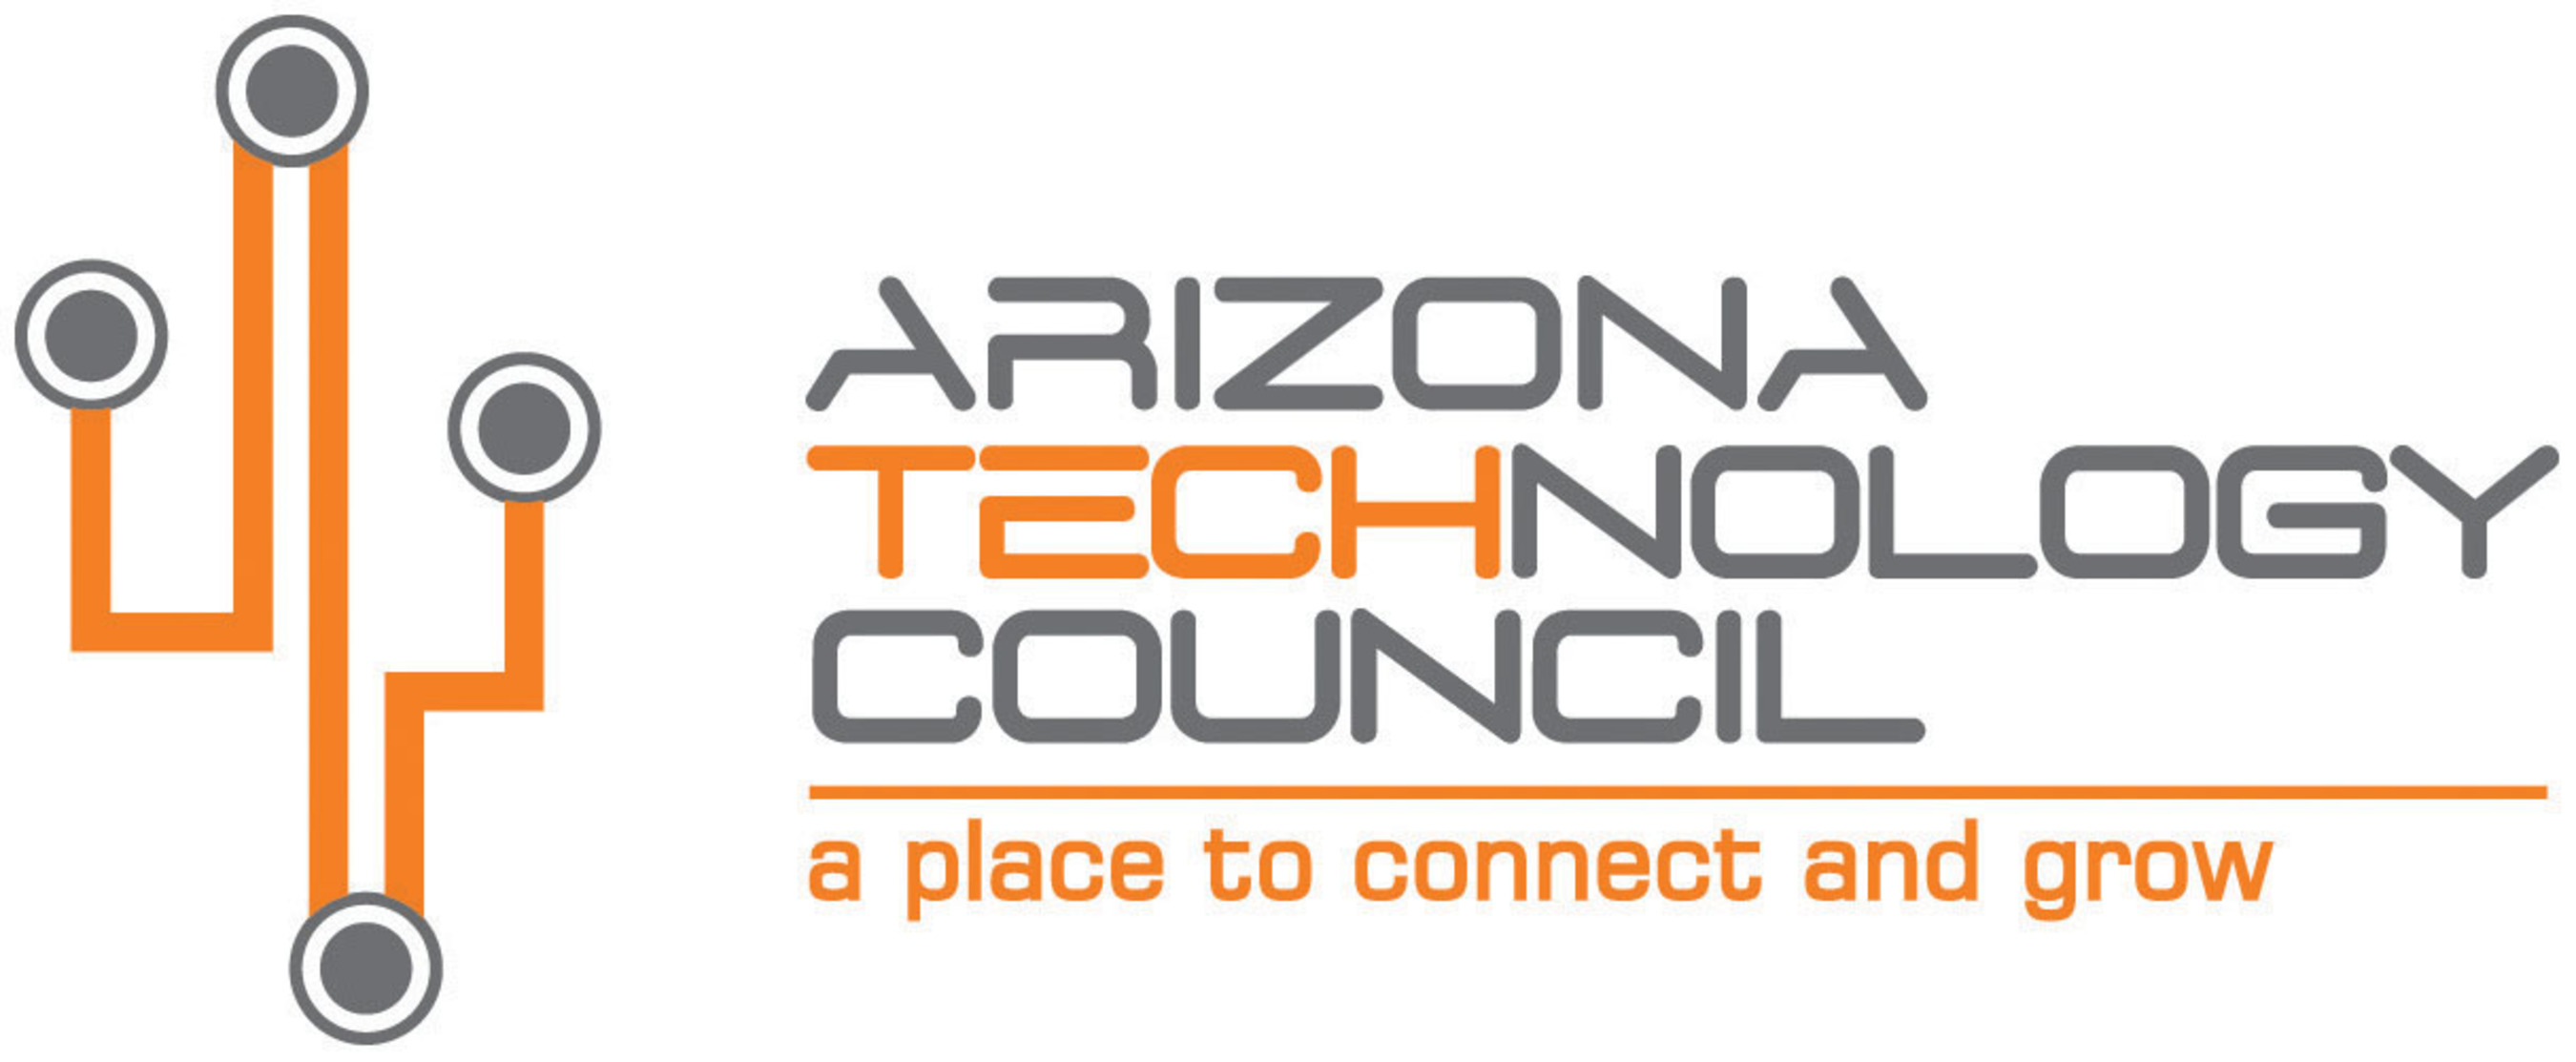 The Arizona Technology Council is Arizona's premier trade association for science and technology companies.